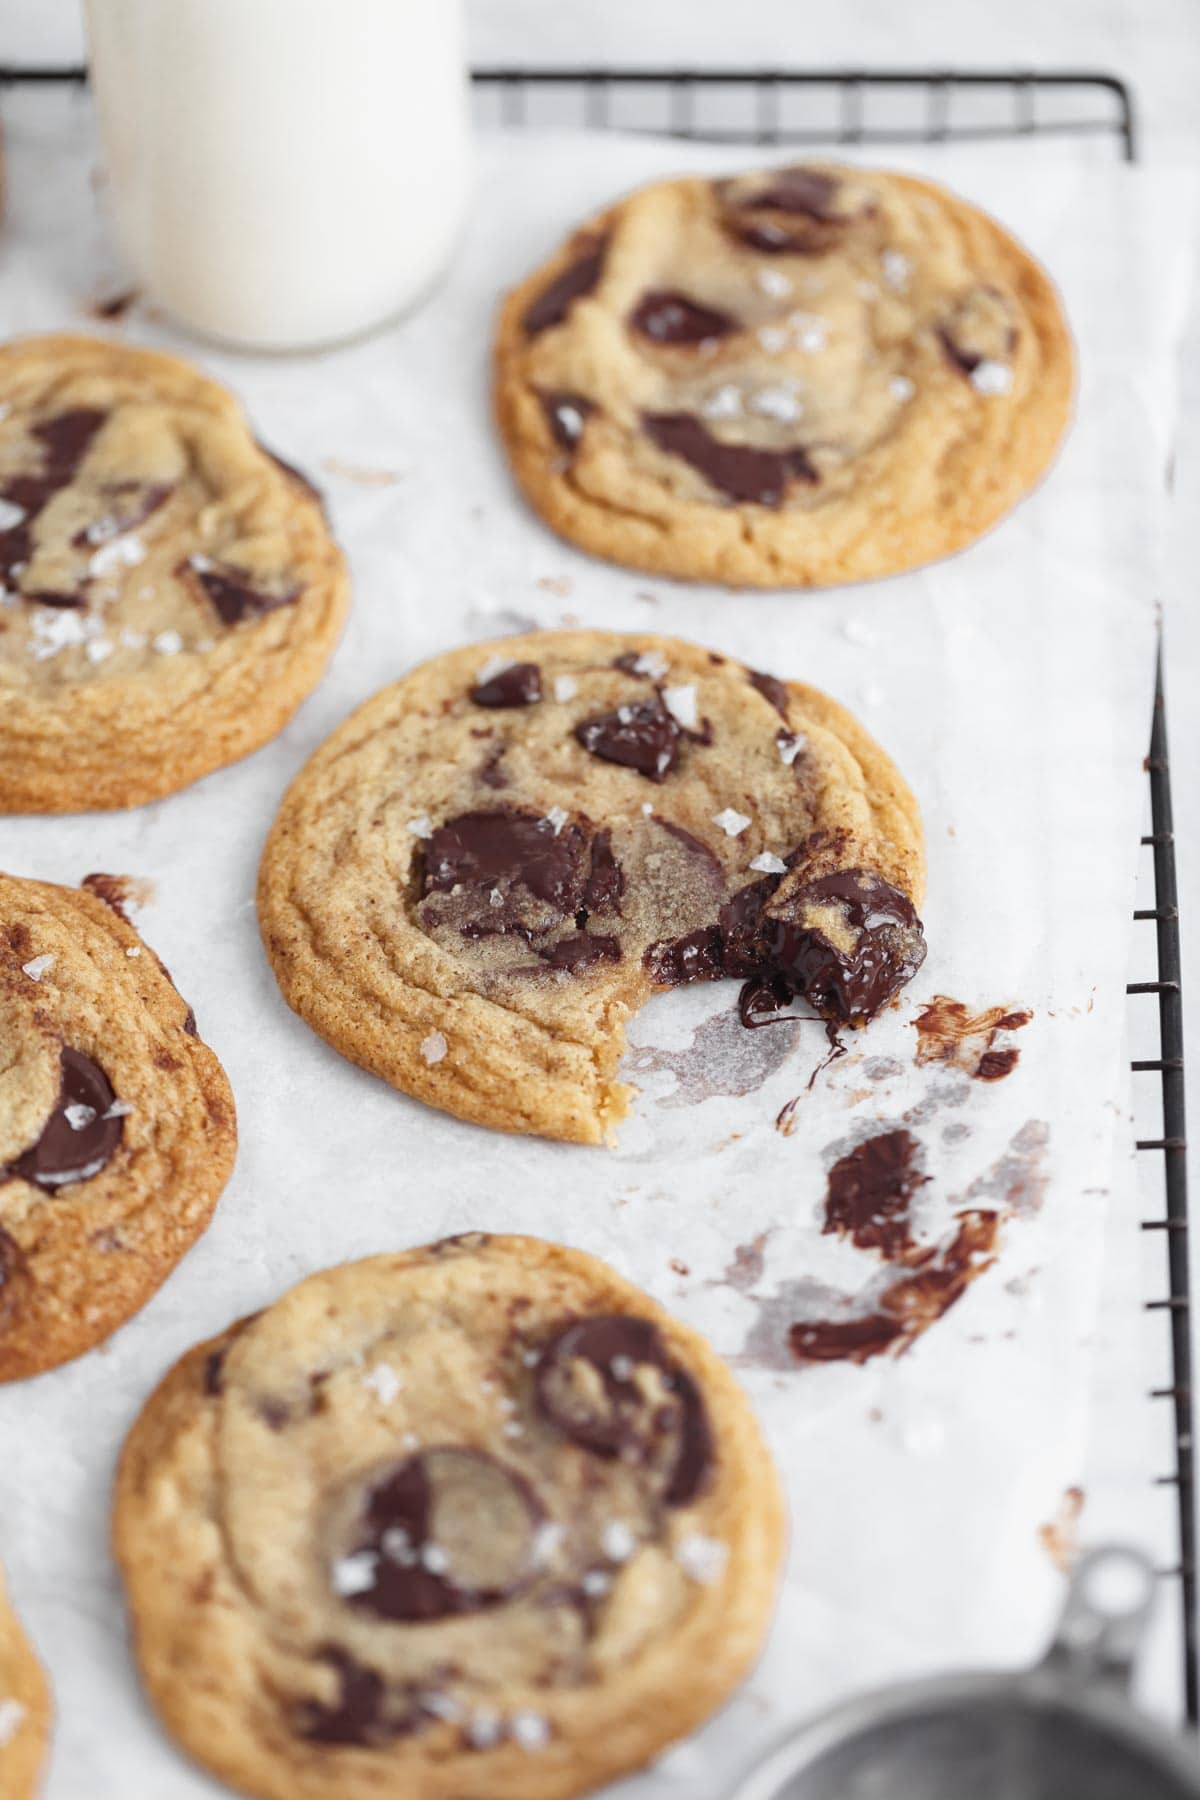 chocolate chip cookie with a bite out of it